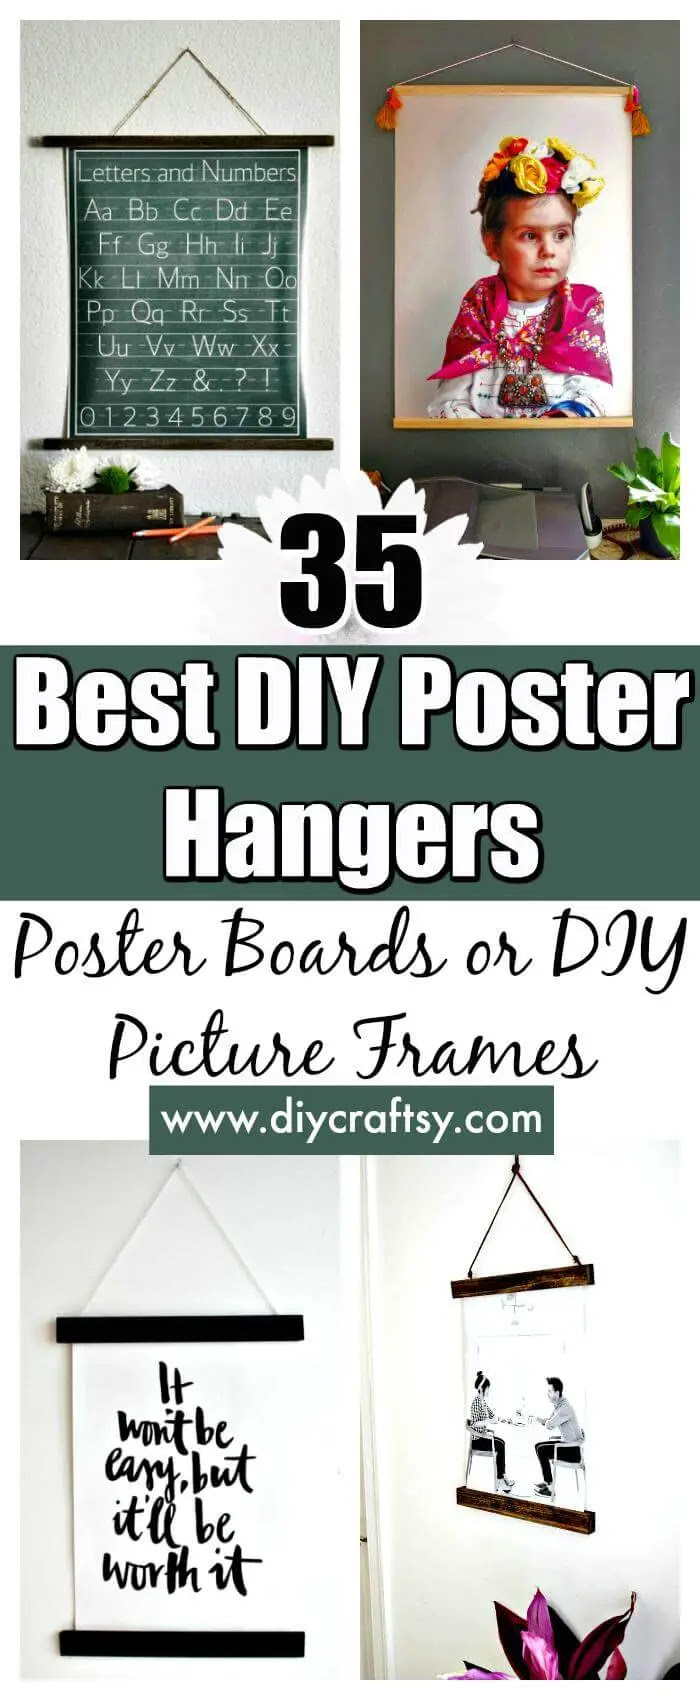 35 Best DIY Poster Hangers / Poster Boards or DIY Picture ...